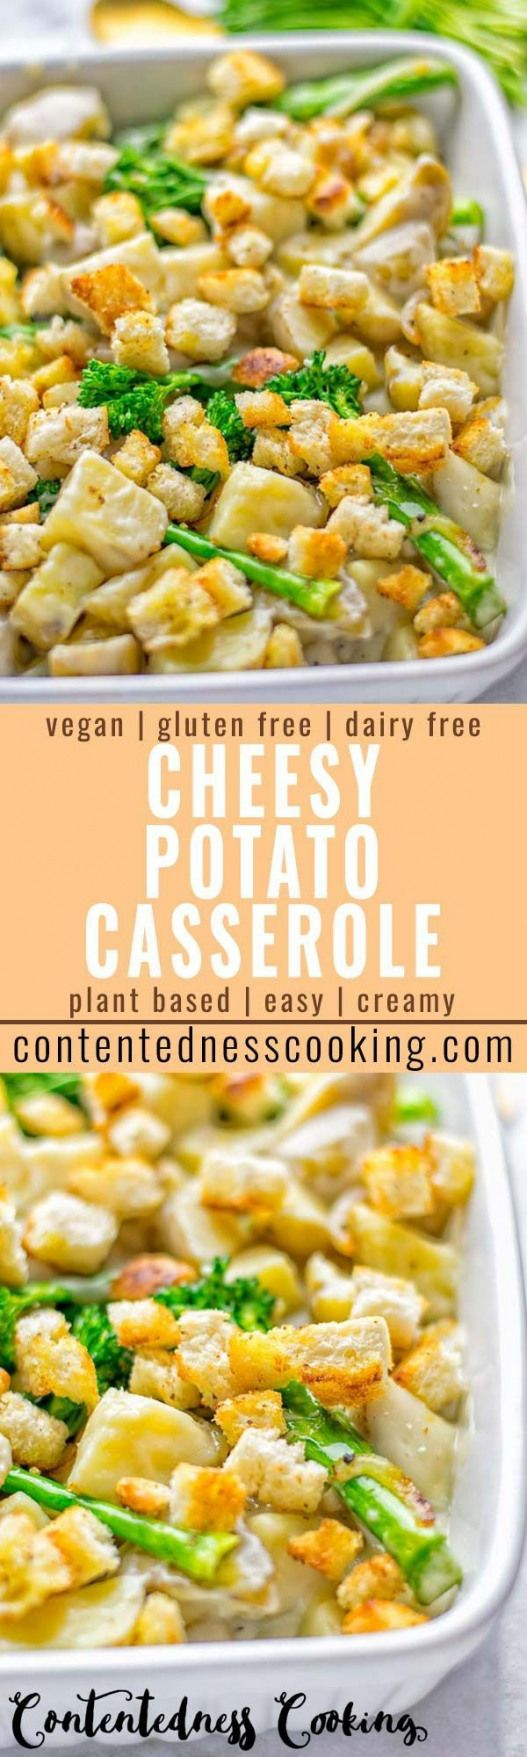 Your favorite recipe source for healthy food [Paleo, Vegan, Gluten free] Super easy and delicious: This Cheesy Potato Casserole with Garlic Croutons is entirely vegan gluten free and the ultimate cozy comfort food for everyone. Dinner lunch meal prep work lunches and a stunner on every Christmas or holiday table.